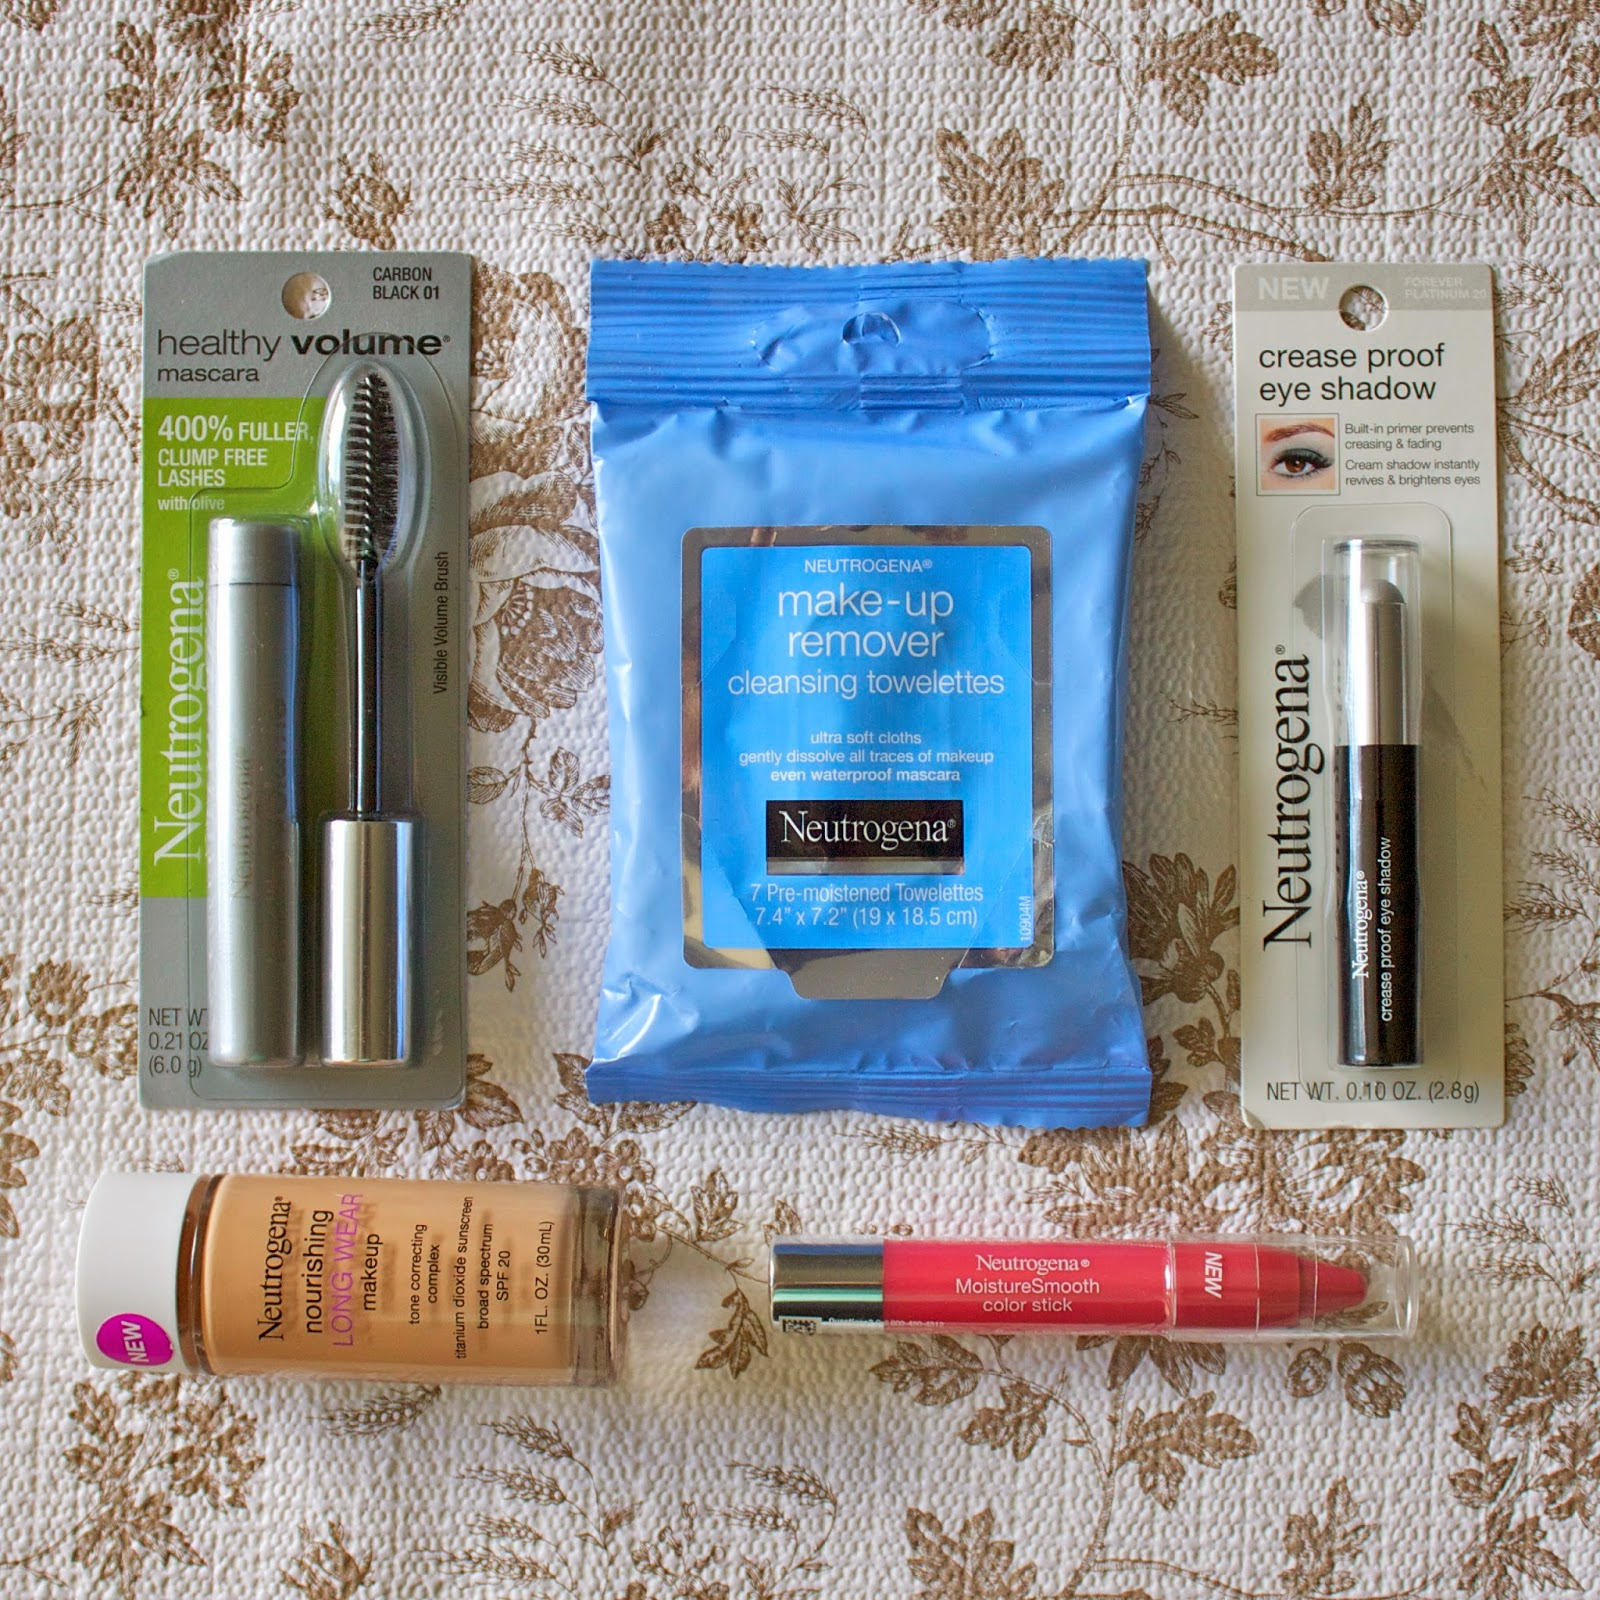 My favorite neutrogena products, neutrogena nourishing long wear liquid make up